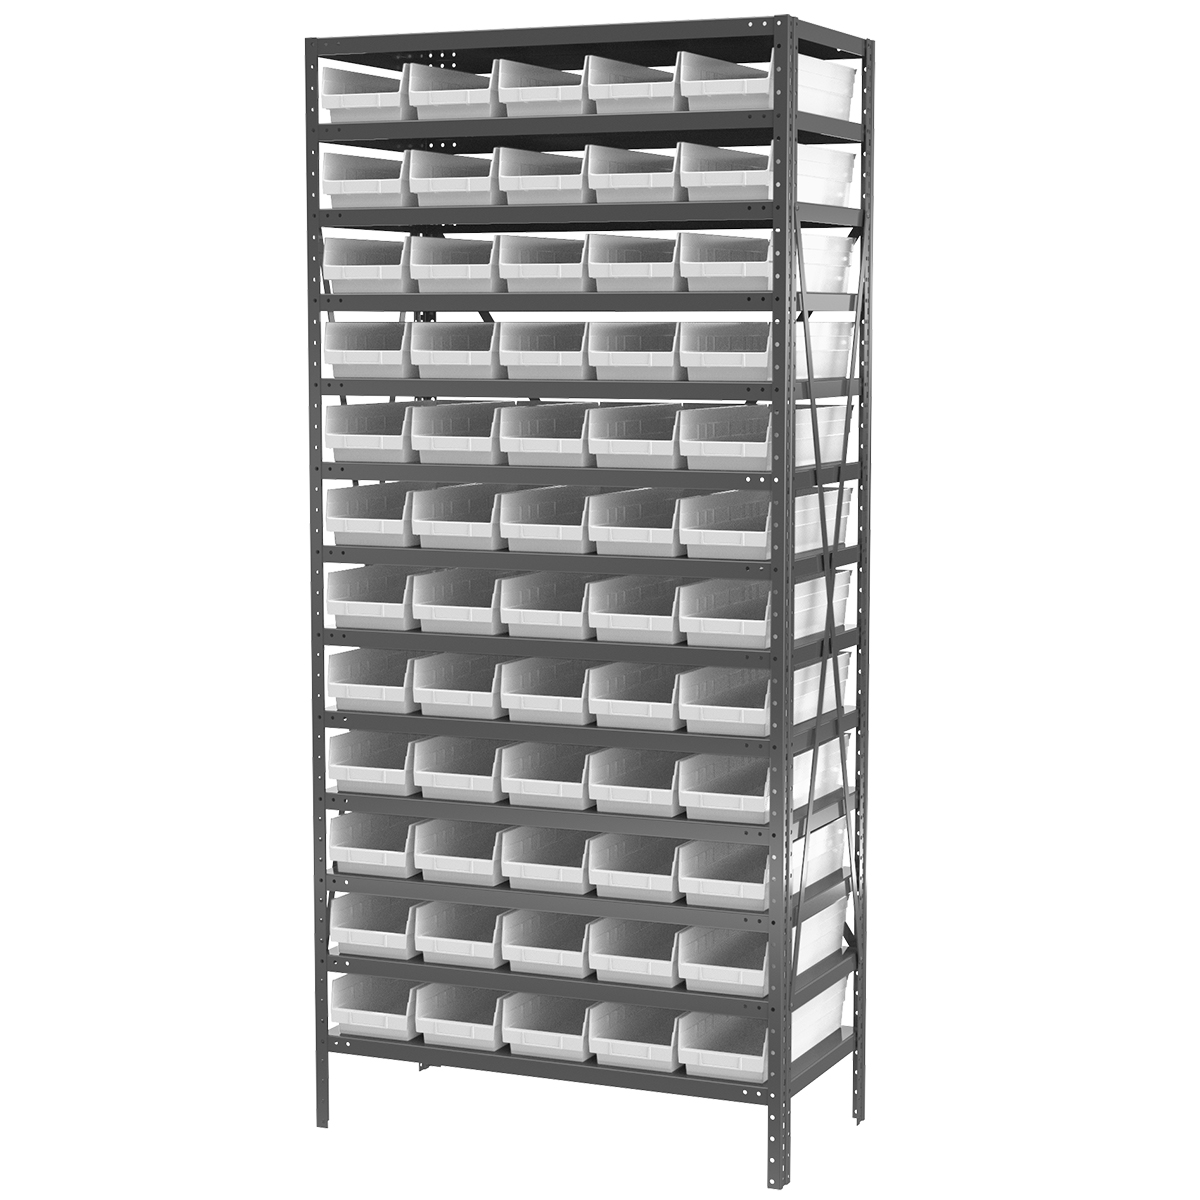 Steel Shelving Kit, 18x36x79, 60 Bins, Gray/White.  This item sold in carton quantities of 1.